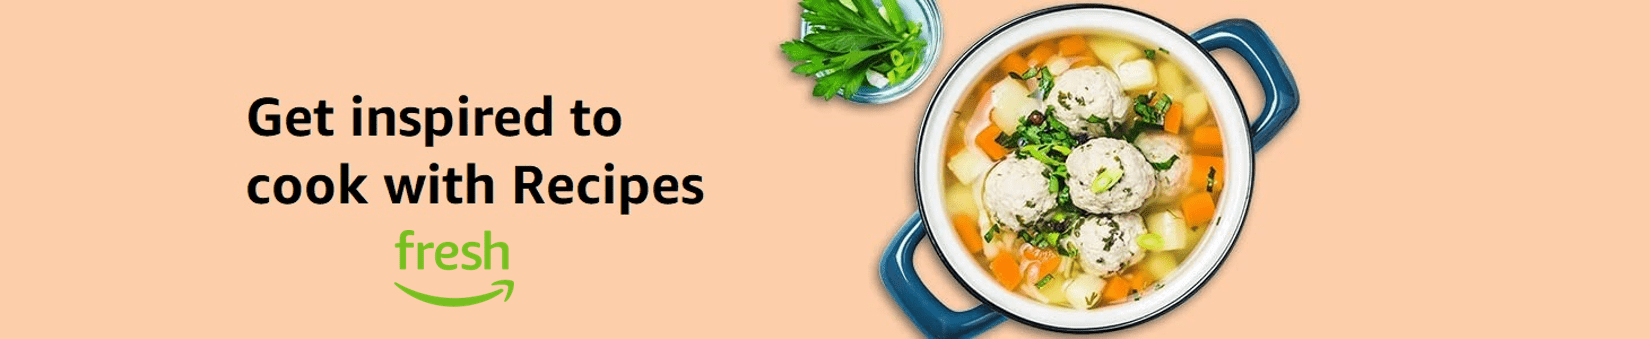 Get inspired to cook with Recipes